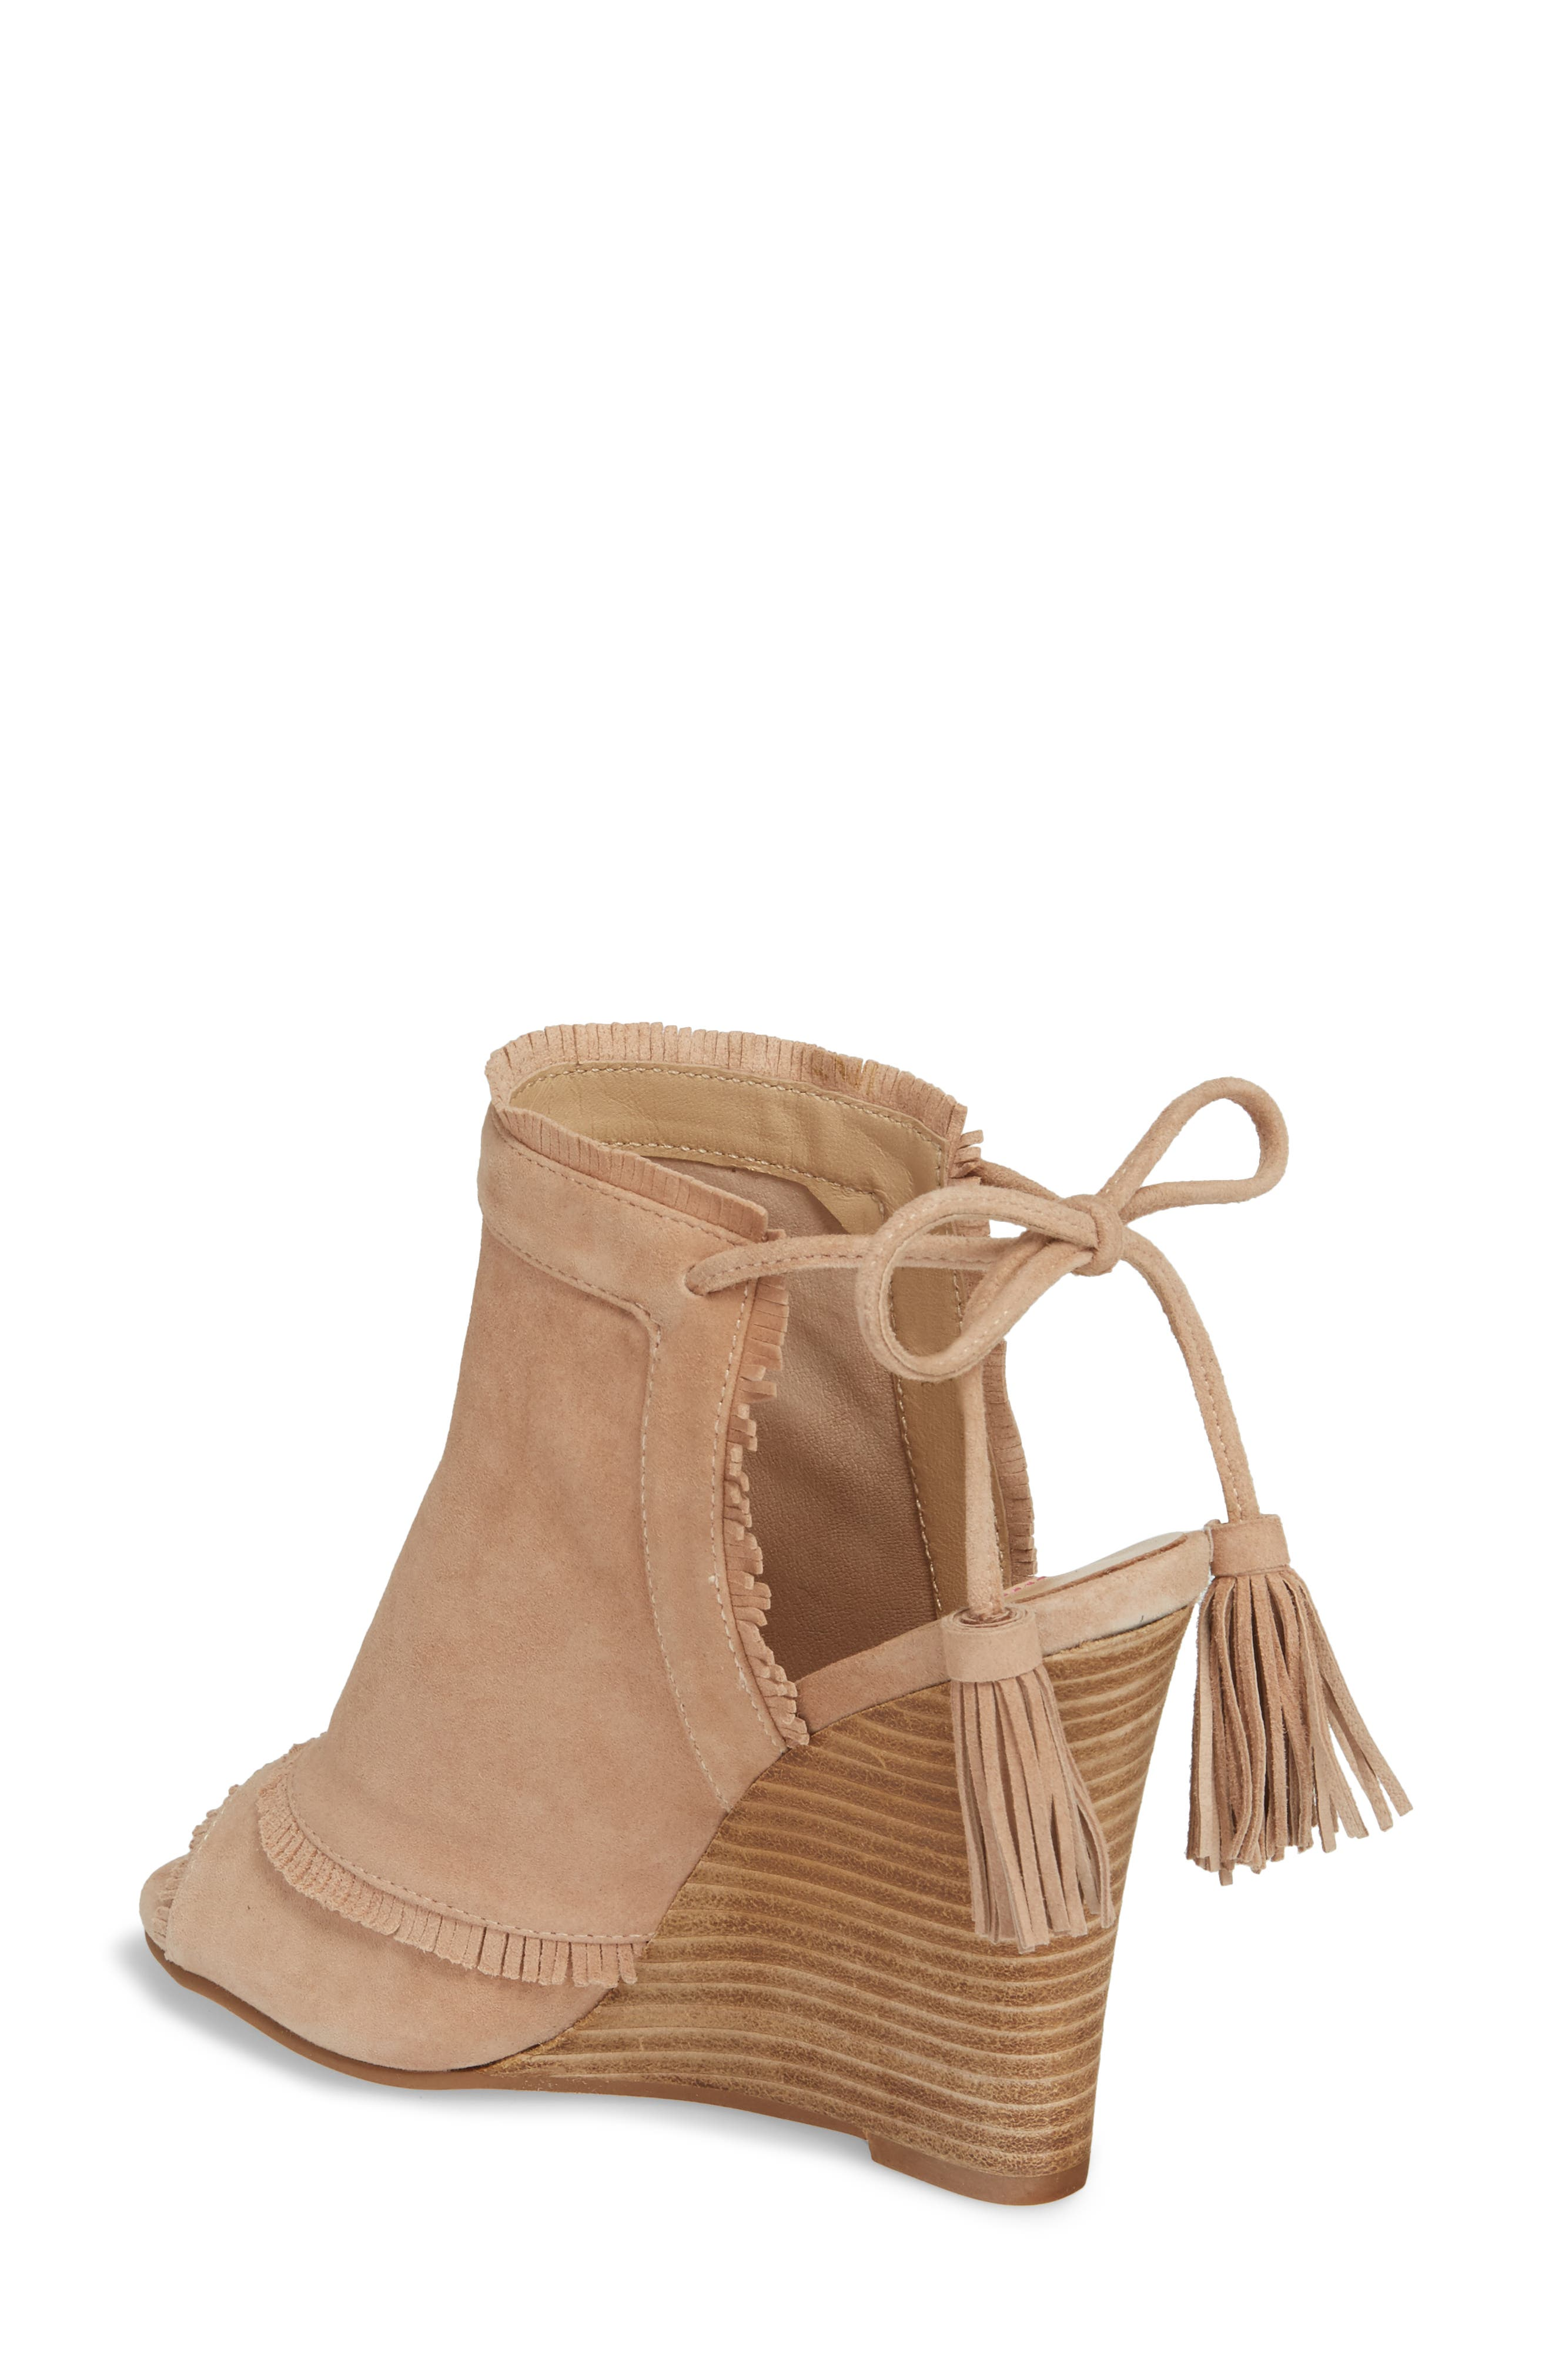 Leilani Wedge,                             Alternate thumbnail 2, color,                             Tigers Eye Suede